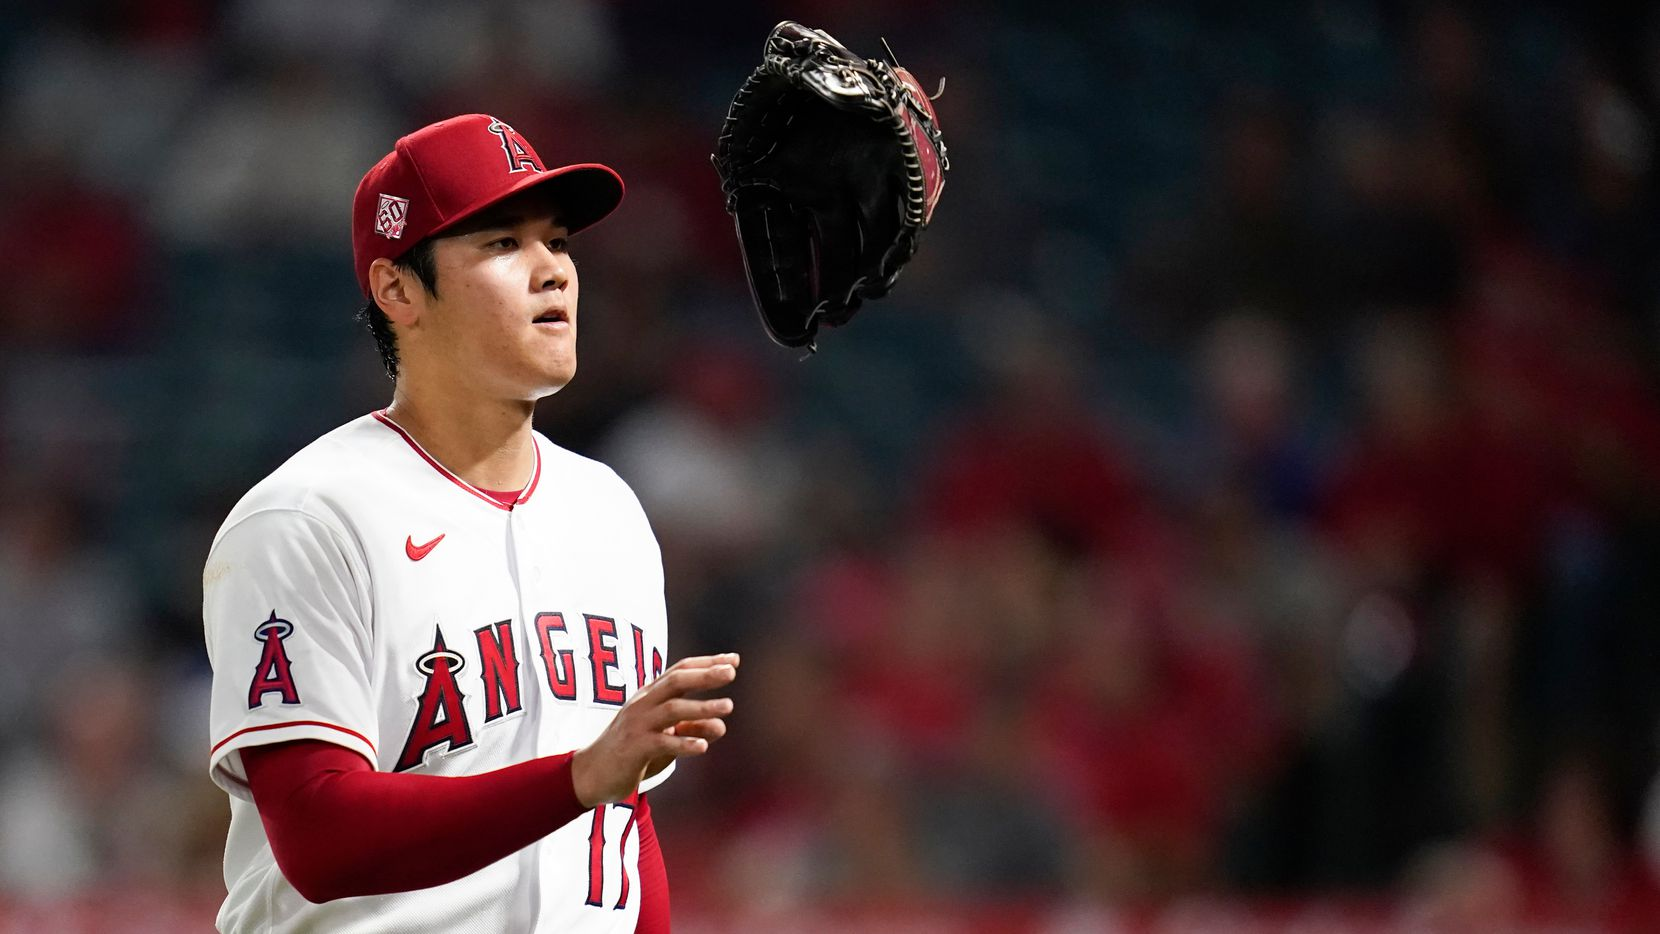 Los Angeles Angels starting pitcher Shohei Ohtani (17) tosses his glove as he returns to the dugout in the middle of the fourth inning of a baseball game against the Texas Rangers Friday, Sep. 3, 2021, in Anaheim, Calif. (AP Photo/Ashley Landis)